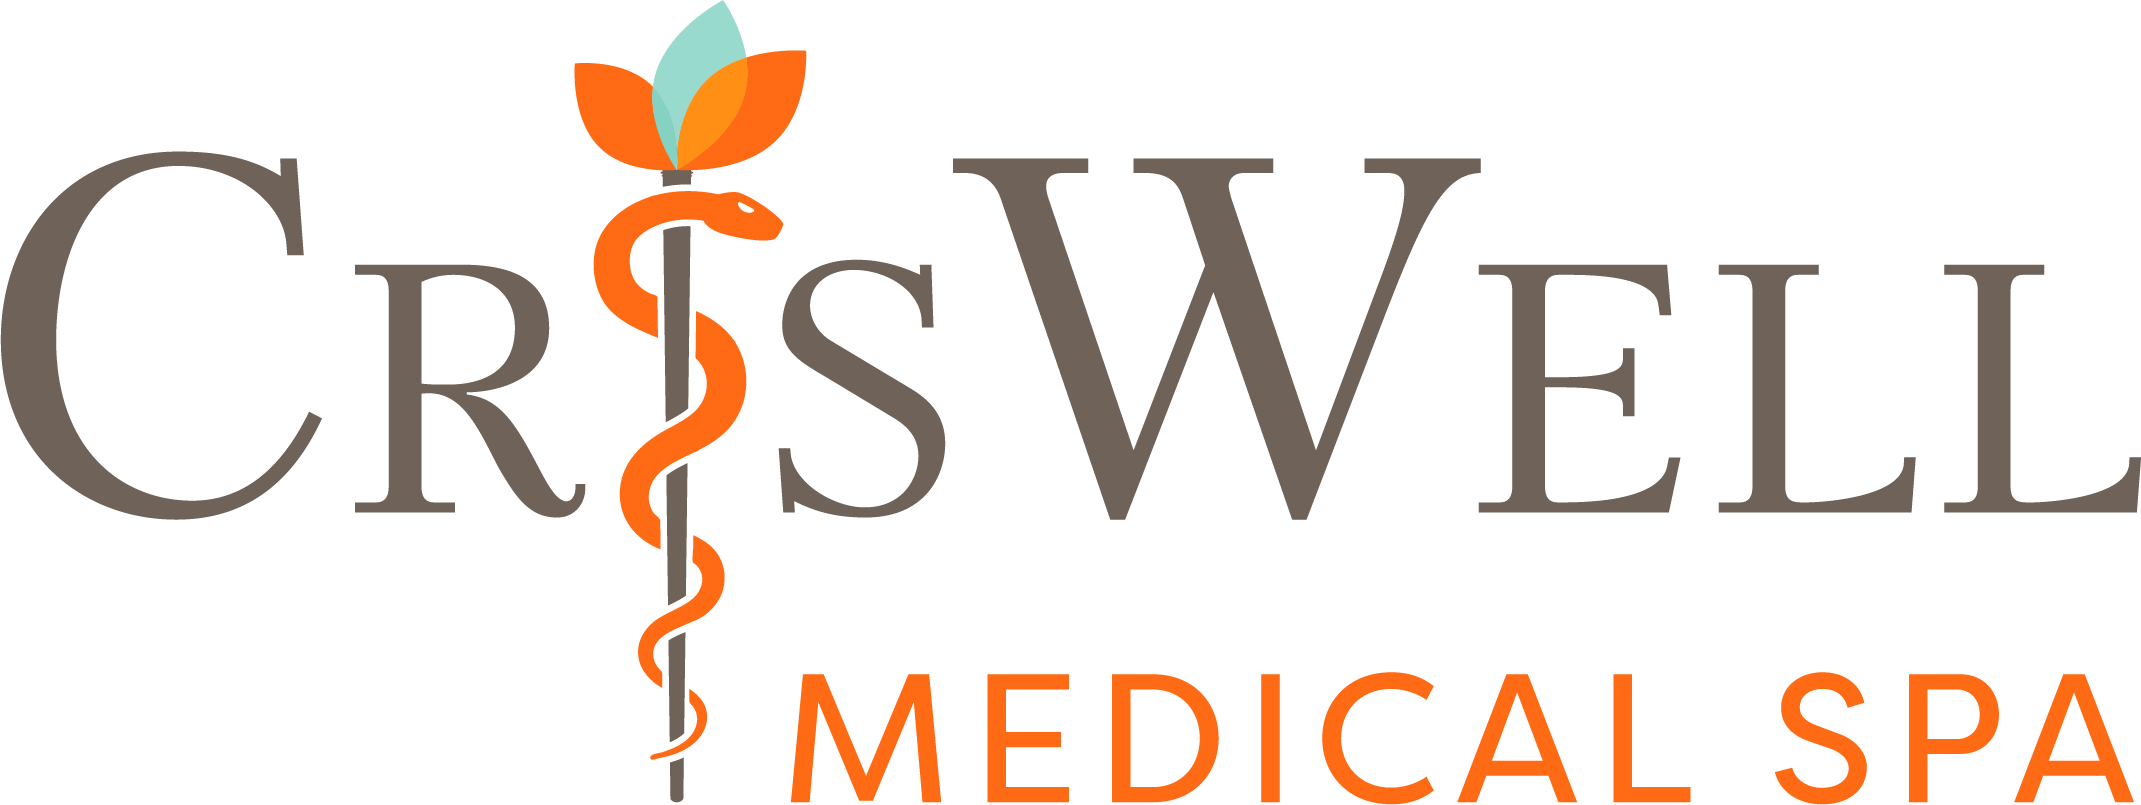 CrisWell_Logo